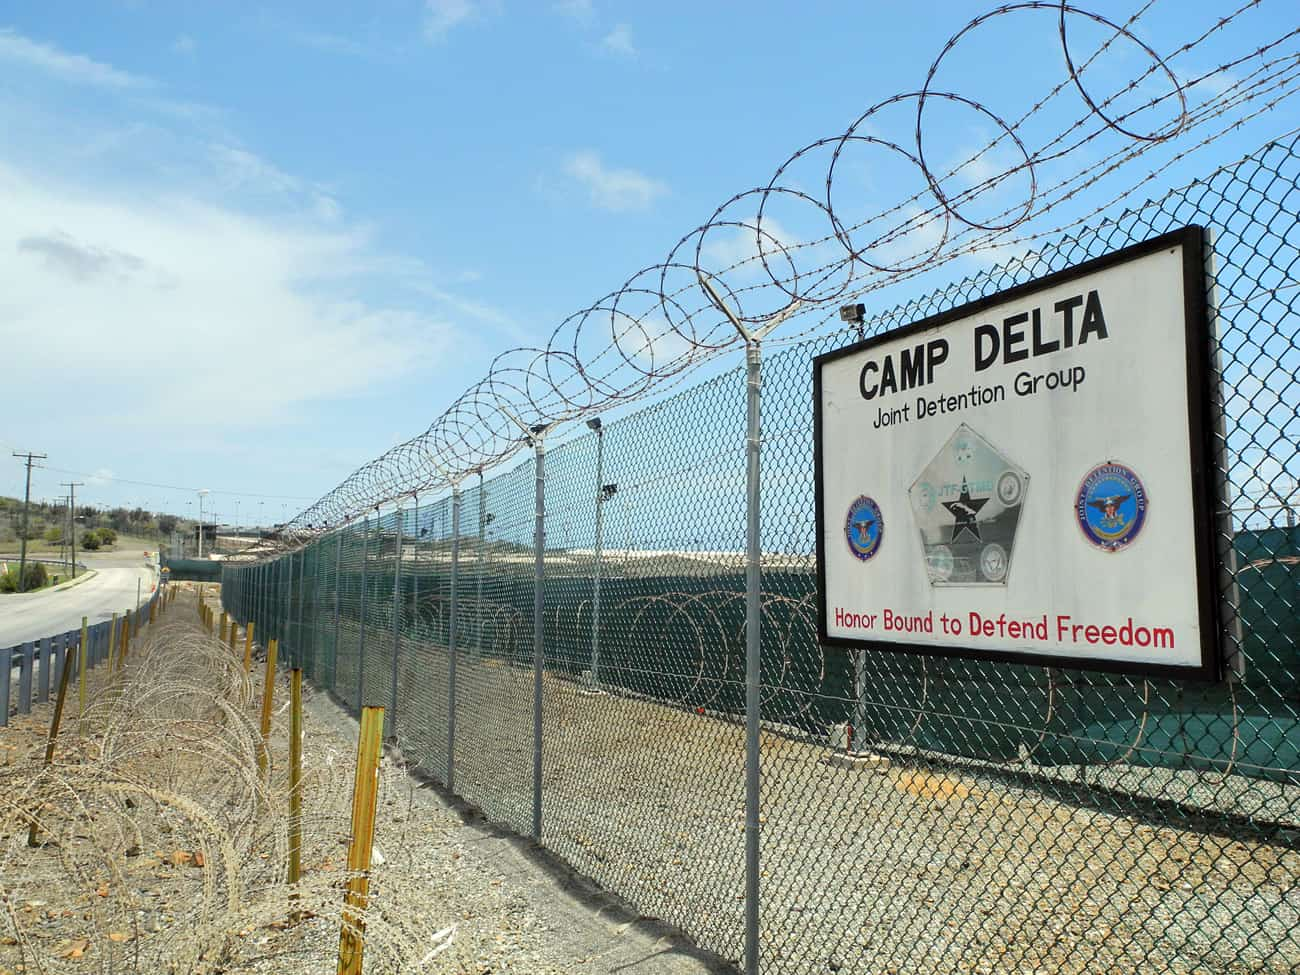 Camp Delta at the U.S. Naval Base in Guantanamo Bay, Cuba on Aug. 7, 2013.